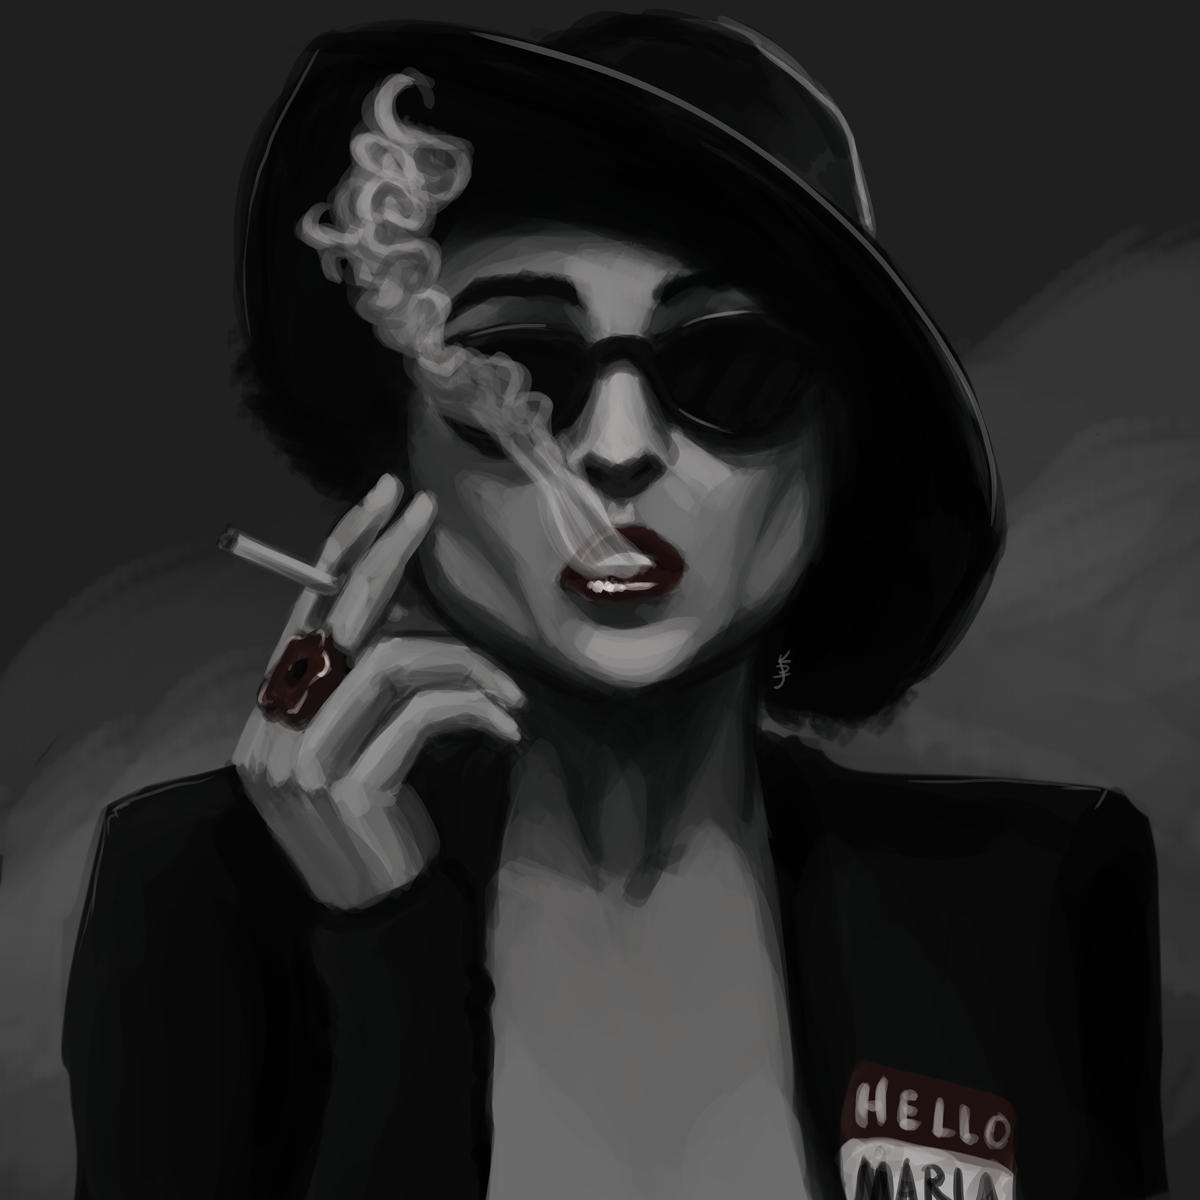 Marla: Artwork by KDJouineau